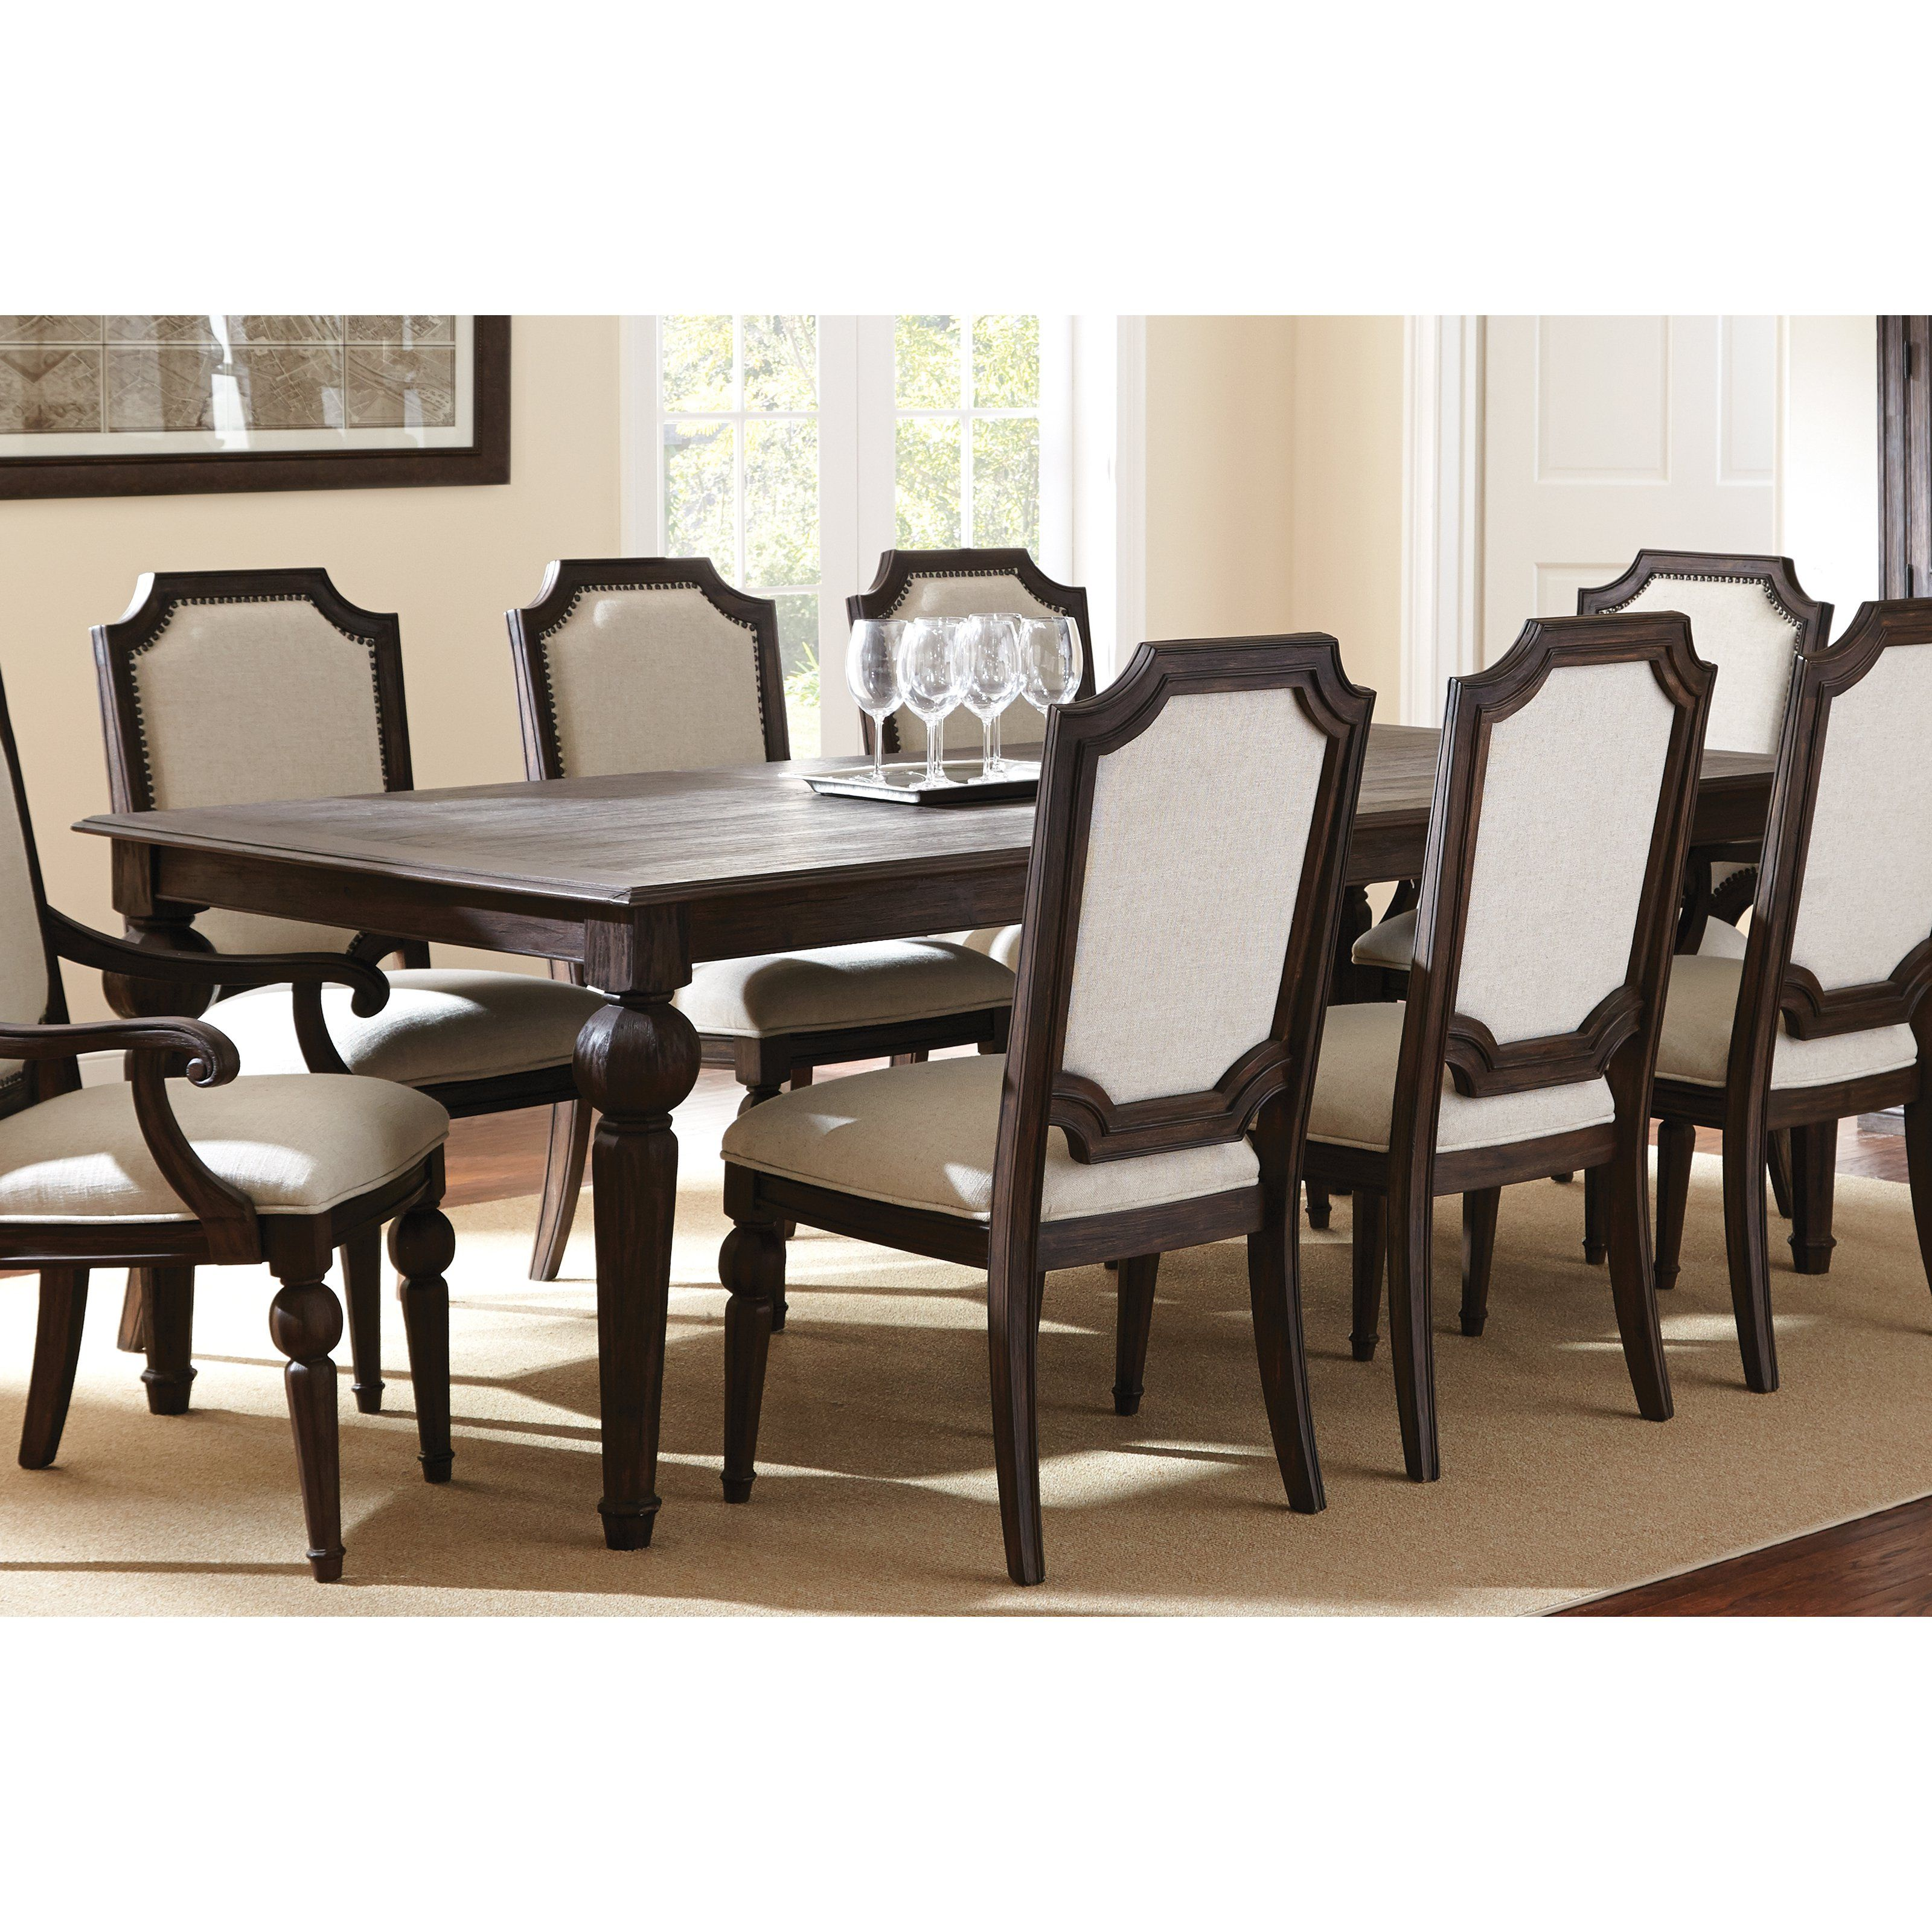 Steve Silver Cayden Dining Table  Black Walnut  From Hayneedle New Steve Silver Dining Room Set Review